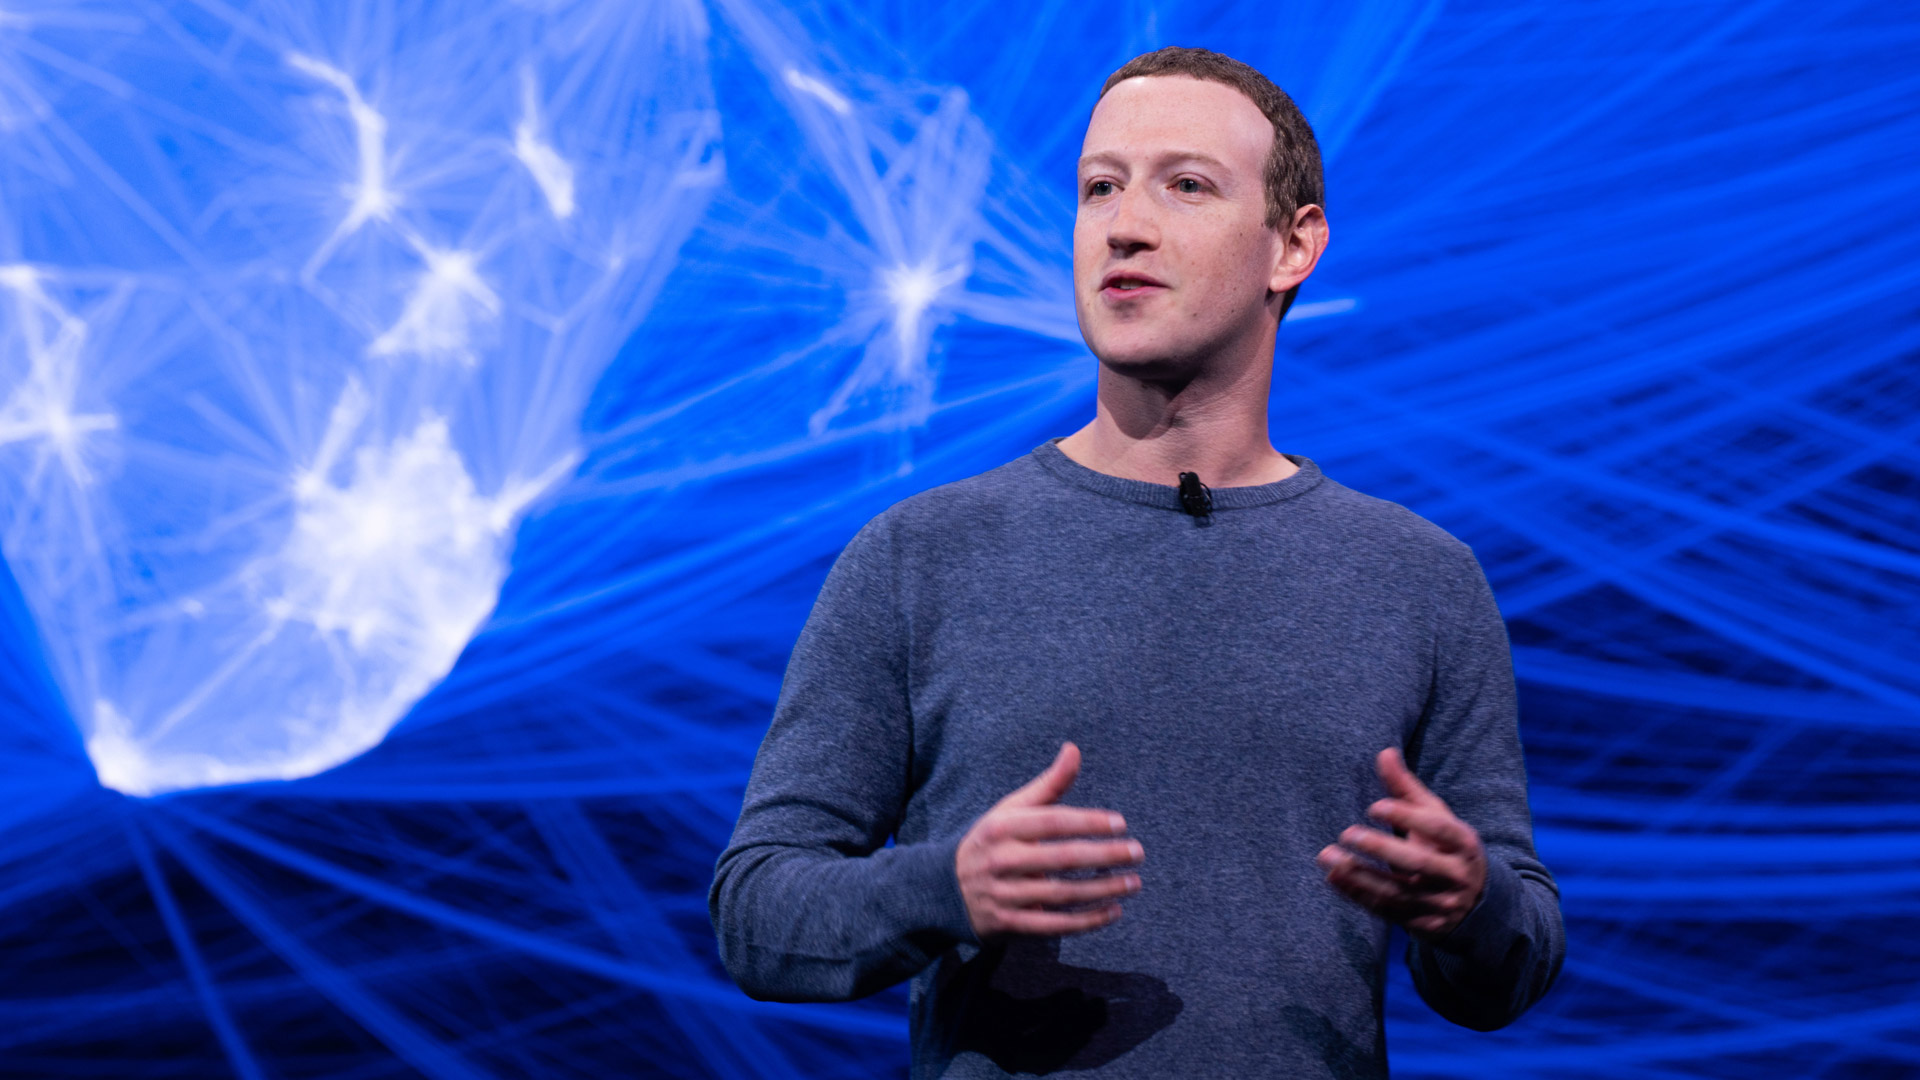 Zuckerberg on Quest Sales: 'Quest is selling as fast as we